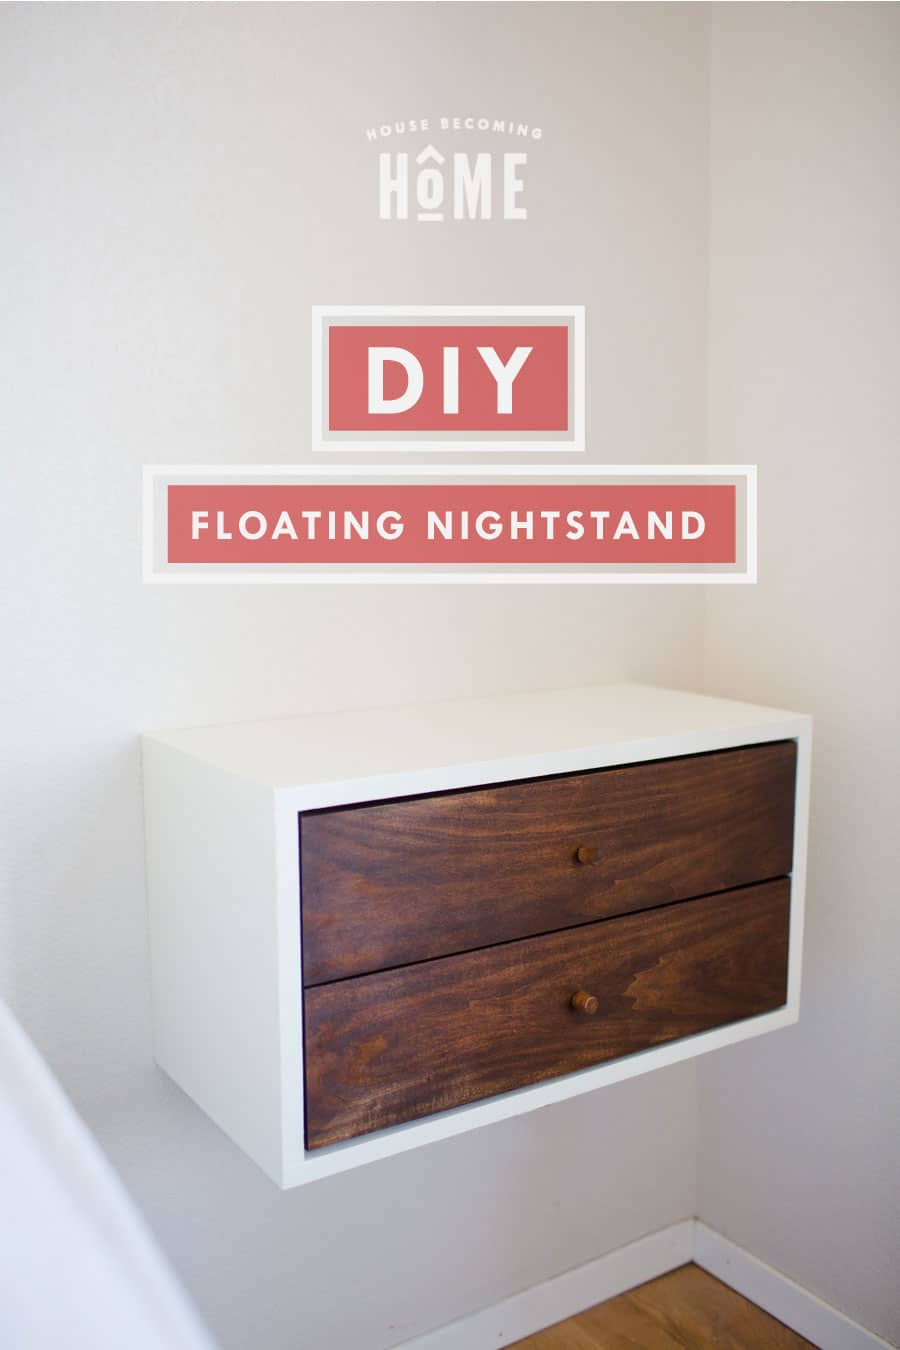 How To Build A Diy Floating Nightstand Full Tutorial And Instructions